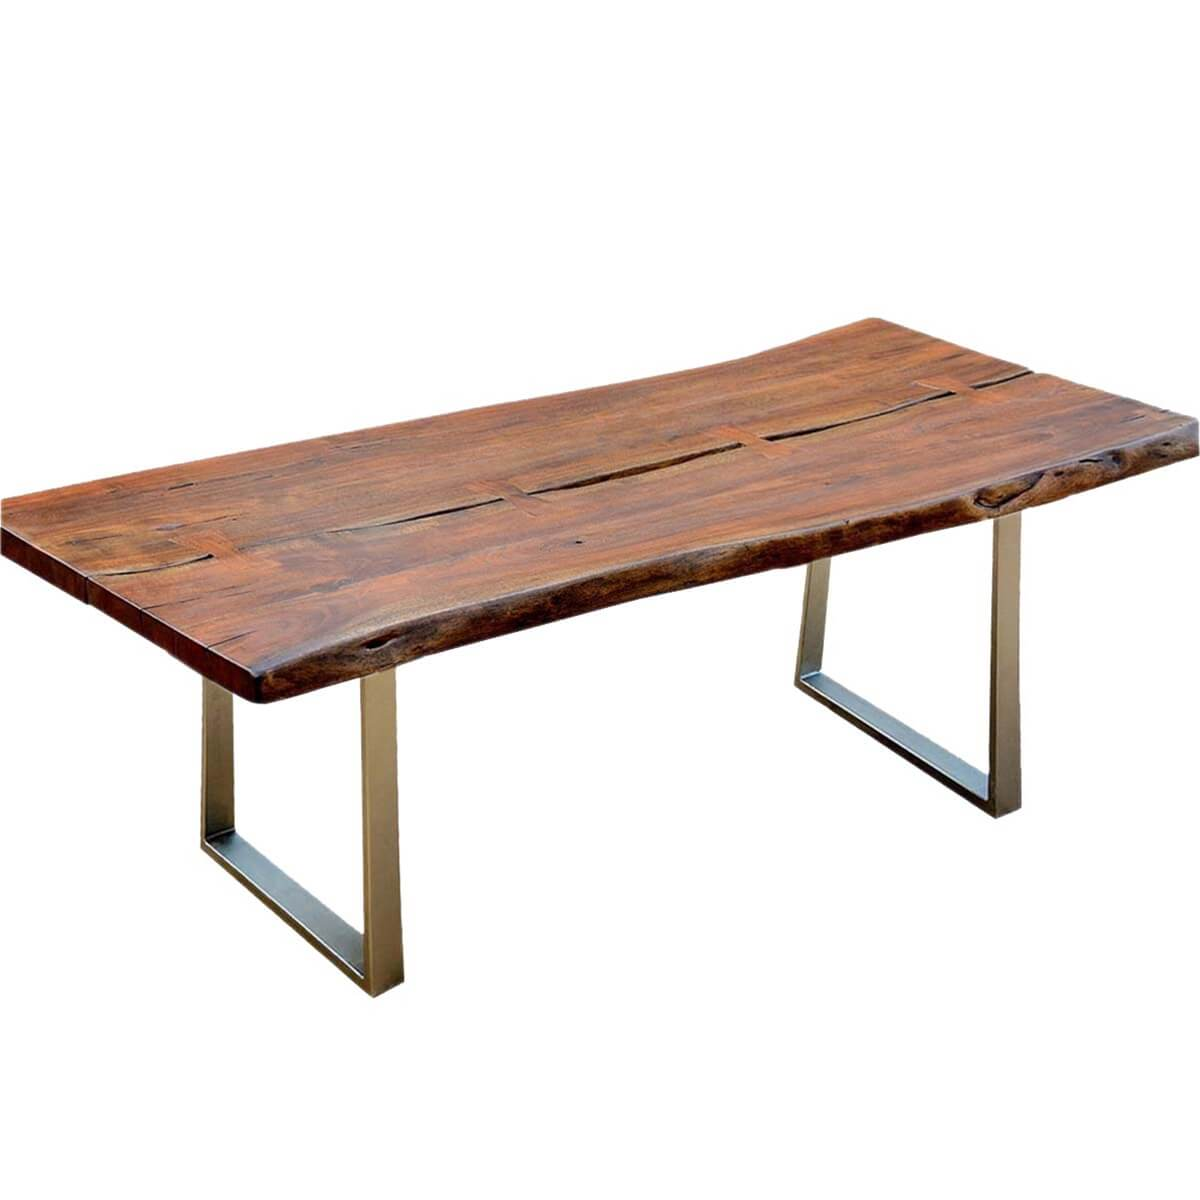 Live edge acacia wood iron rustic large dining table Rustic wood dining table